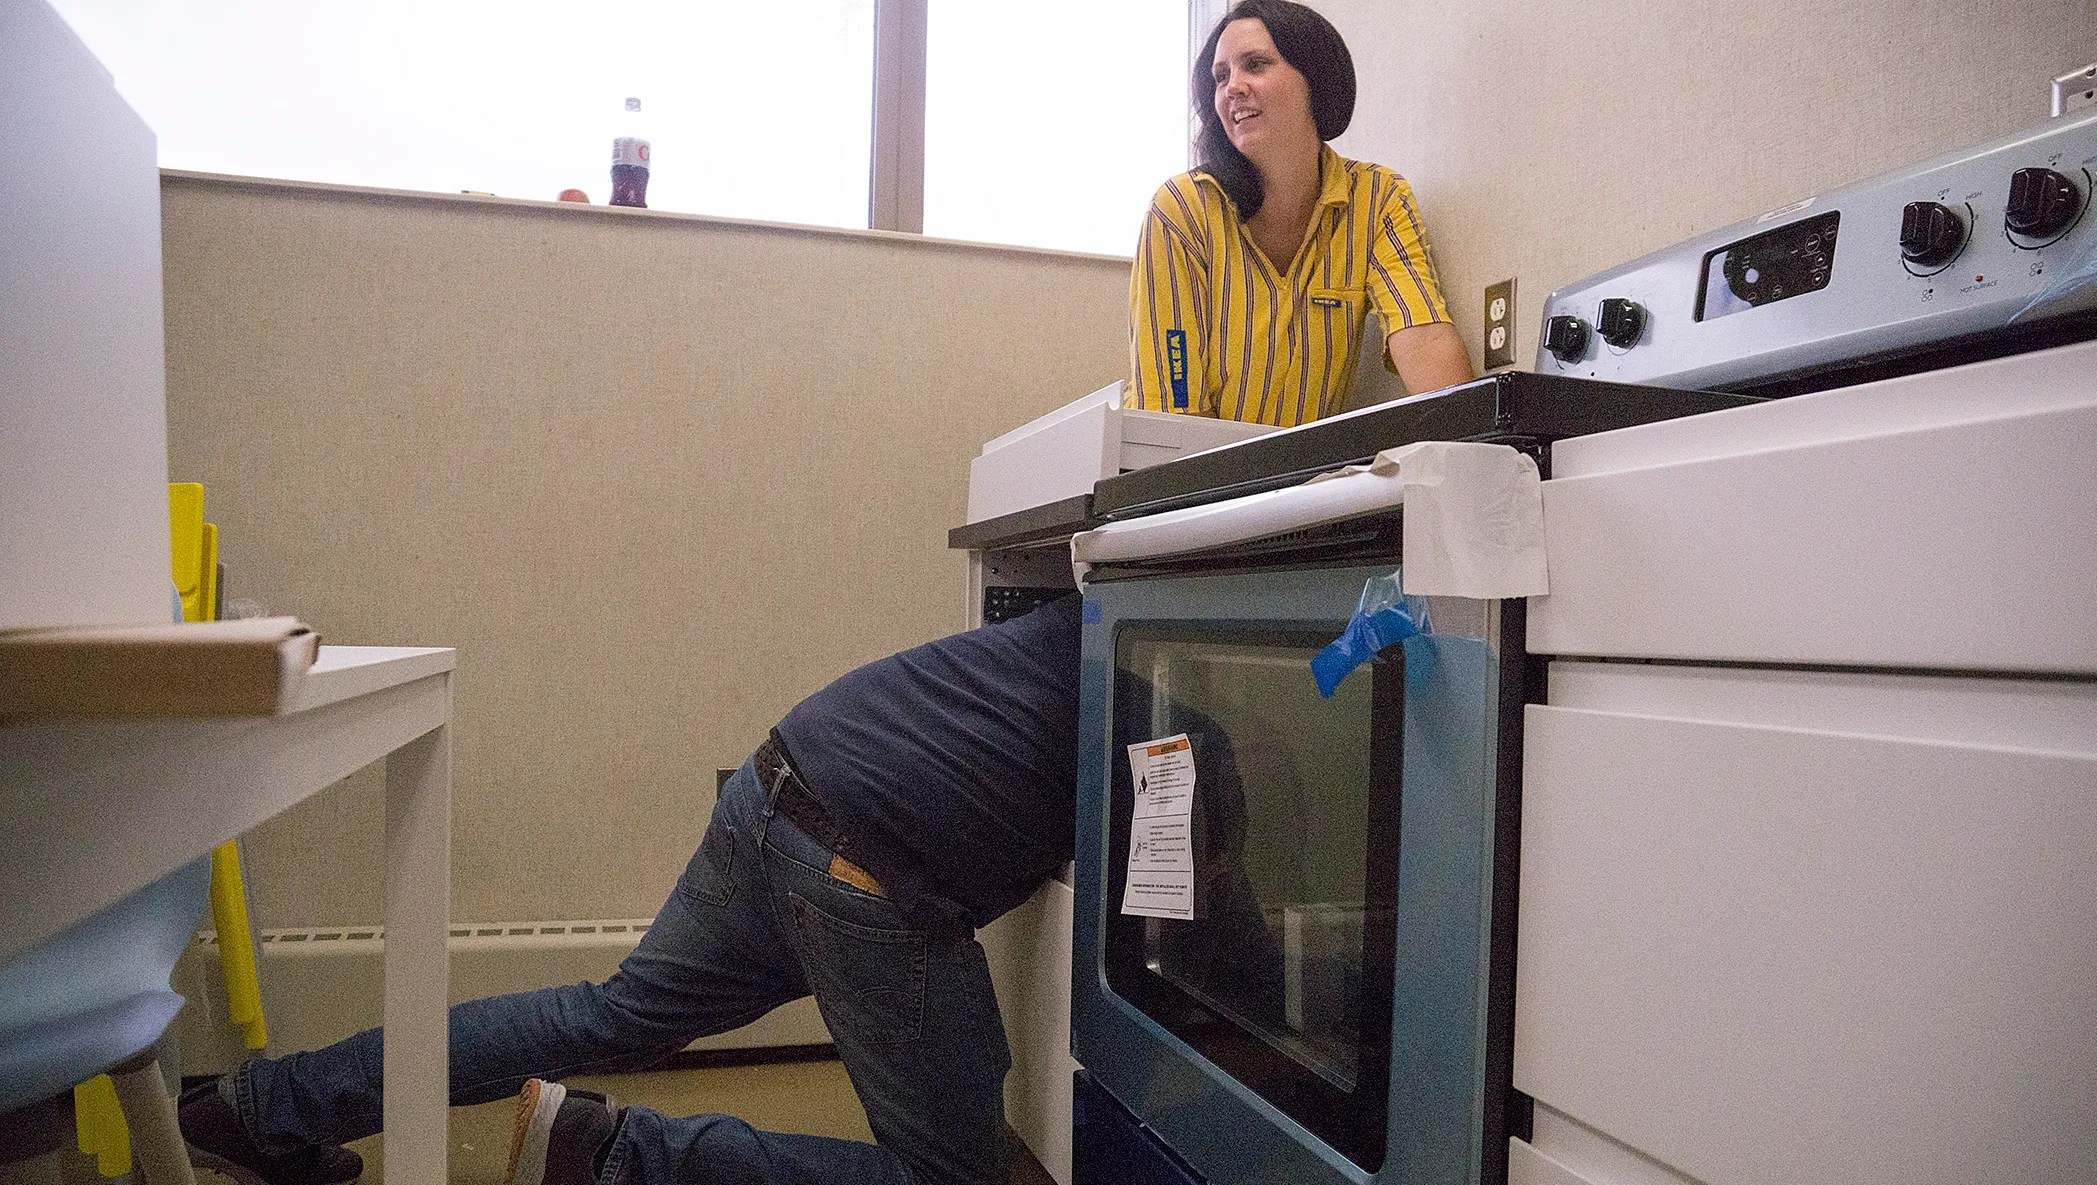 Ikea Donation Takes Youth Center Kitchen From Drab To Chic